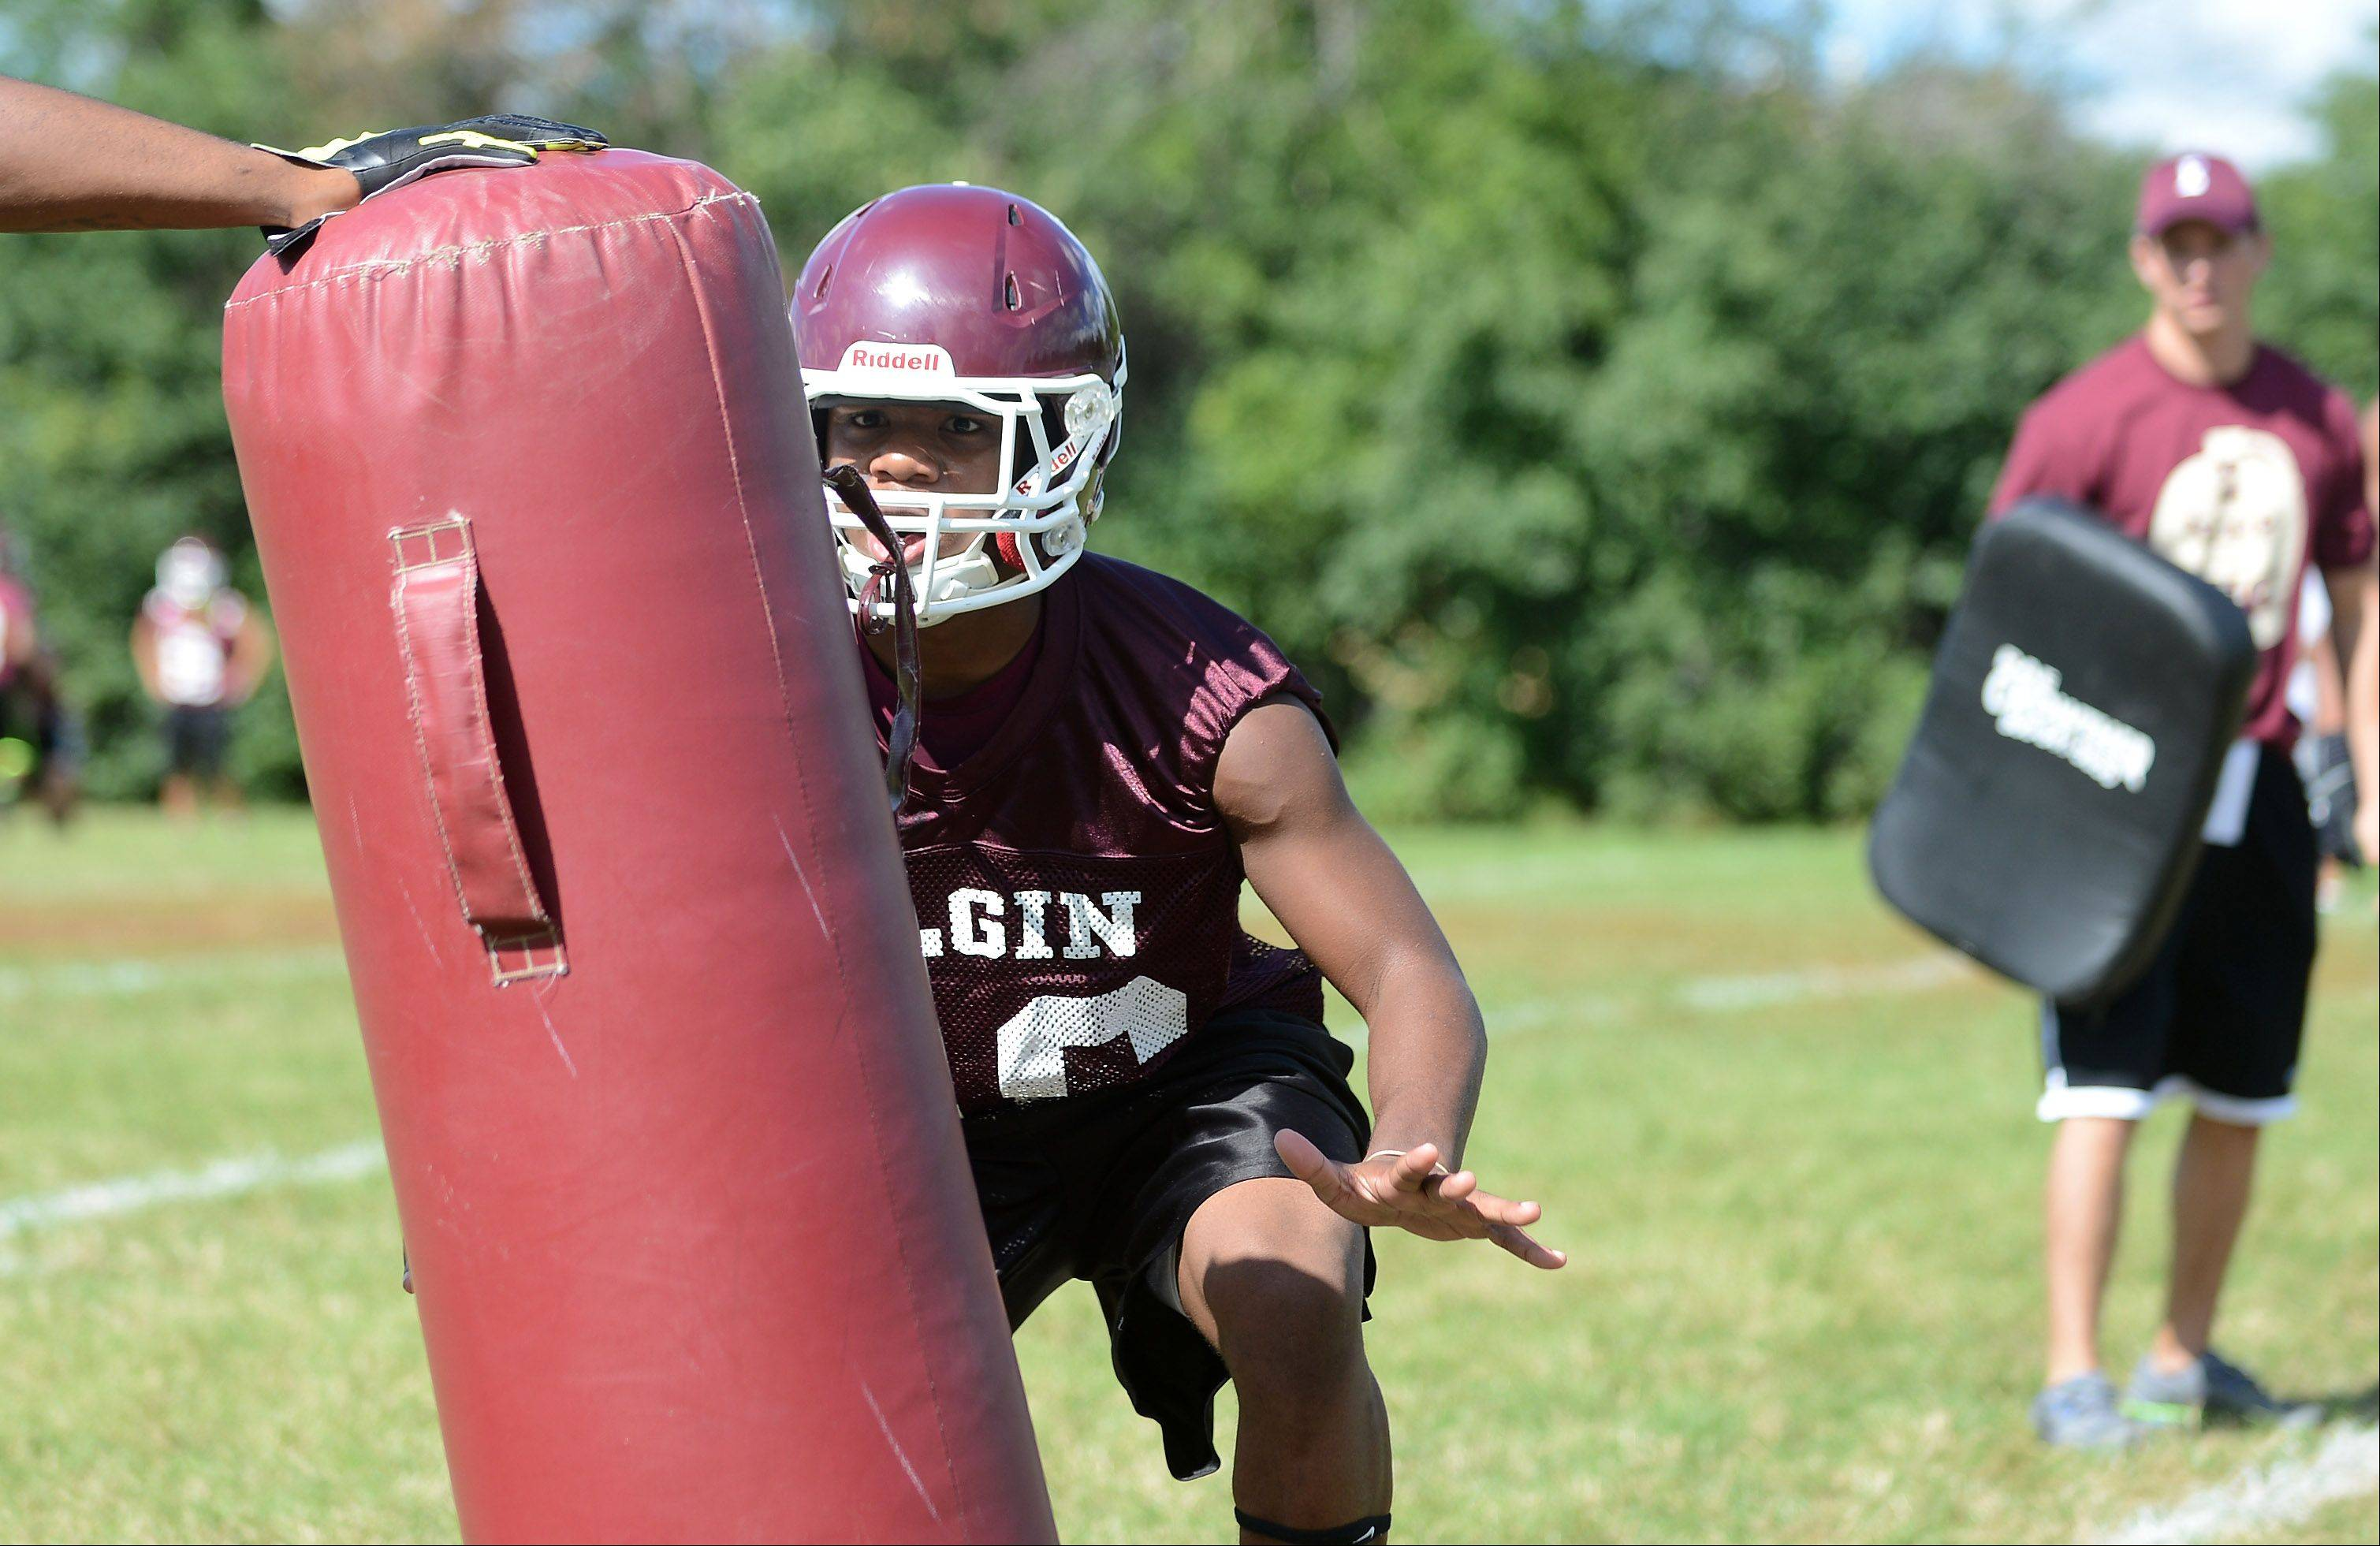 Trae Sallis gets ready to hit the pad during the first day of fall football practice at Elgin High School Wednesday.